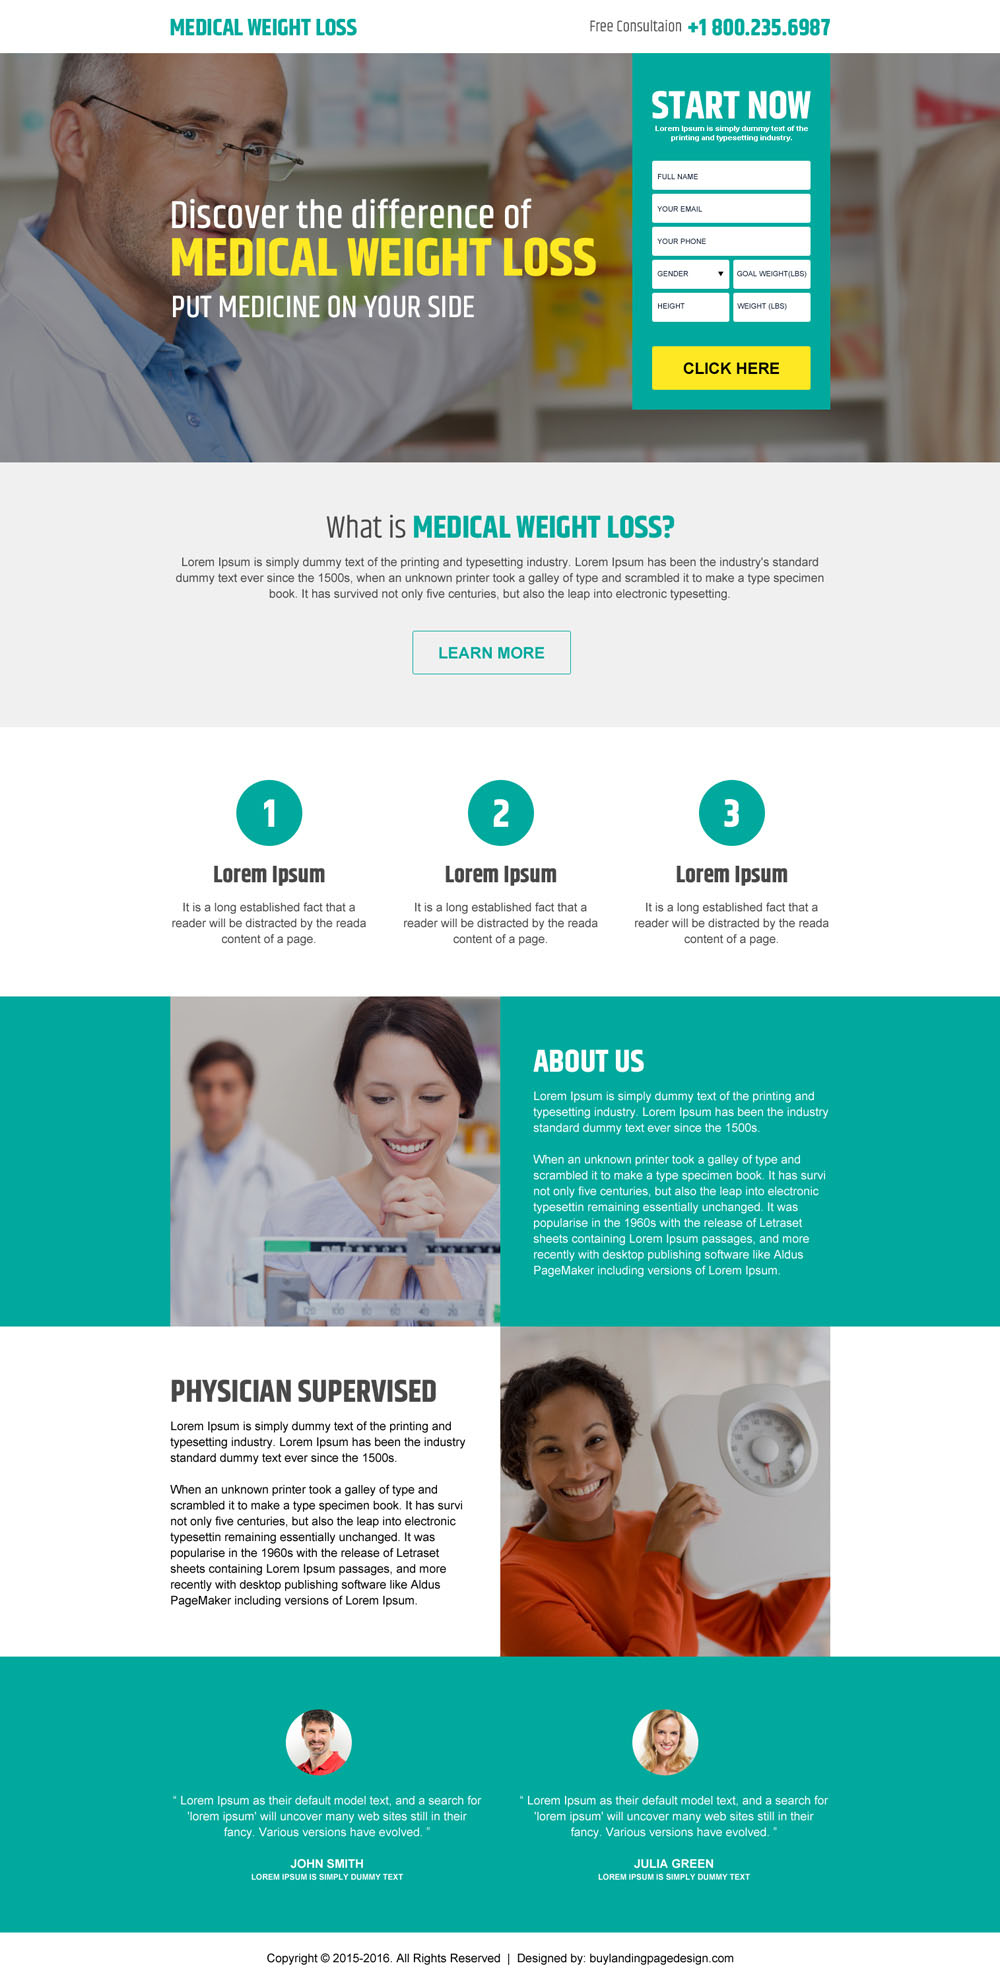 medical-weight-loss-free-consultation-lead-capture-landing-page-design-041